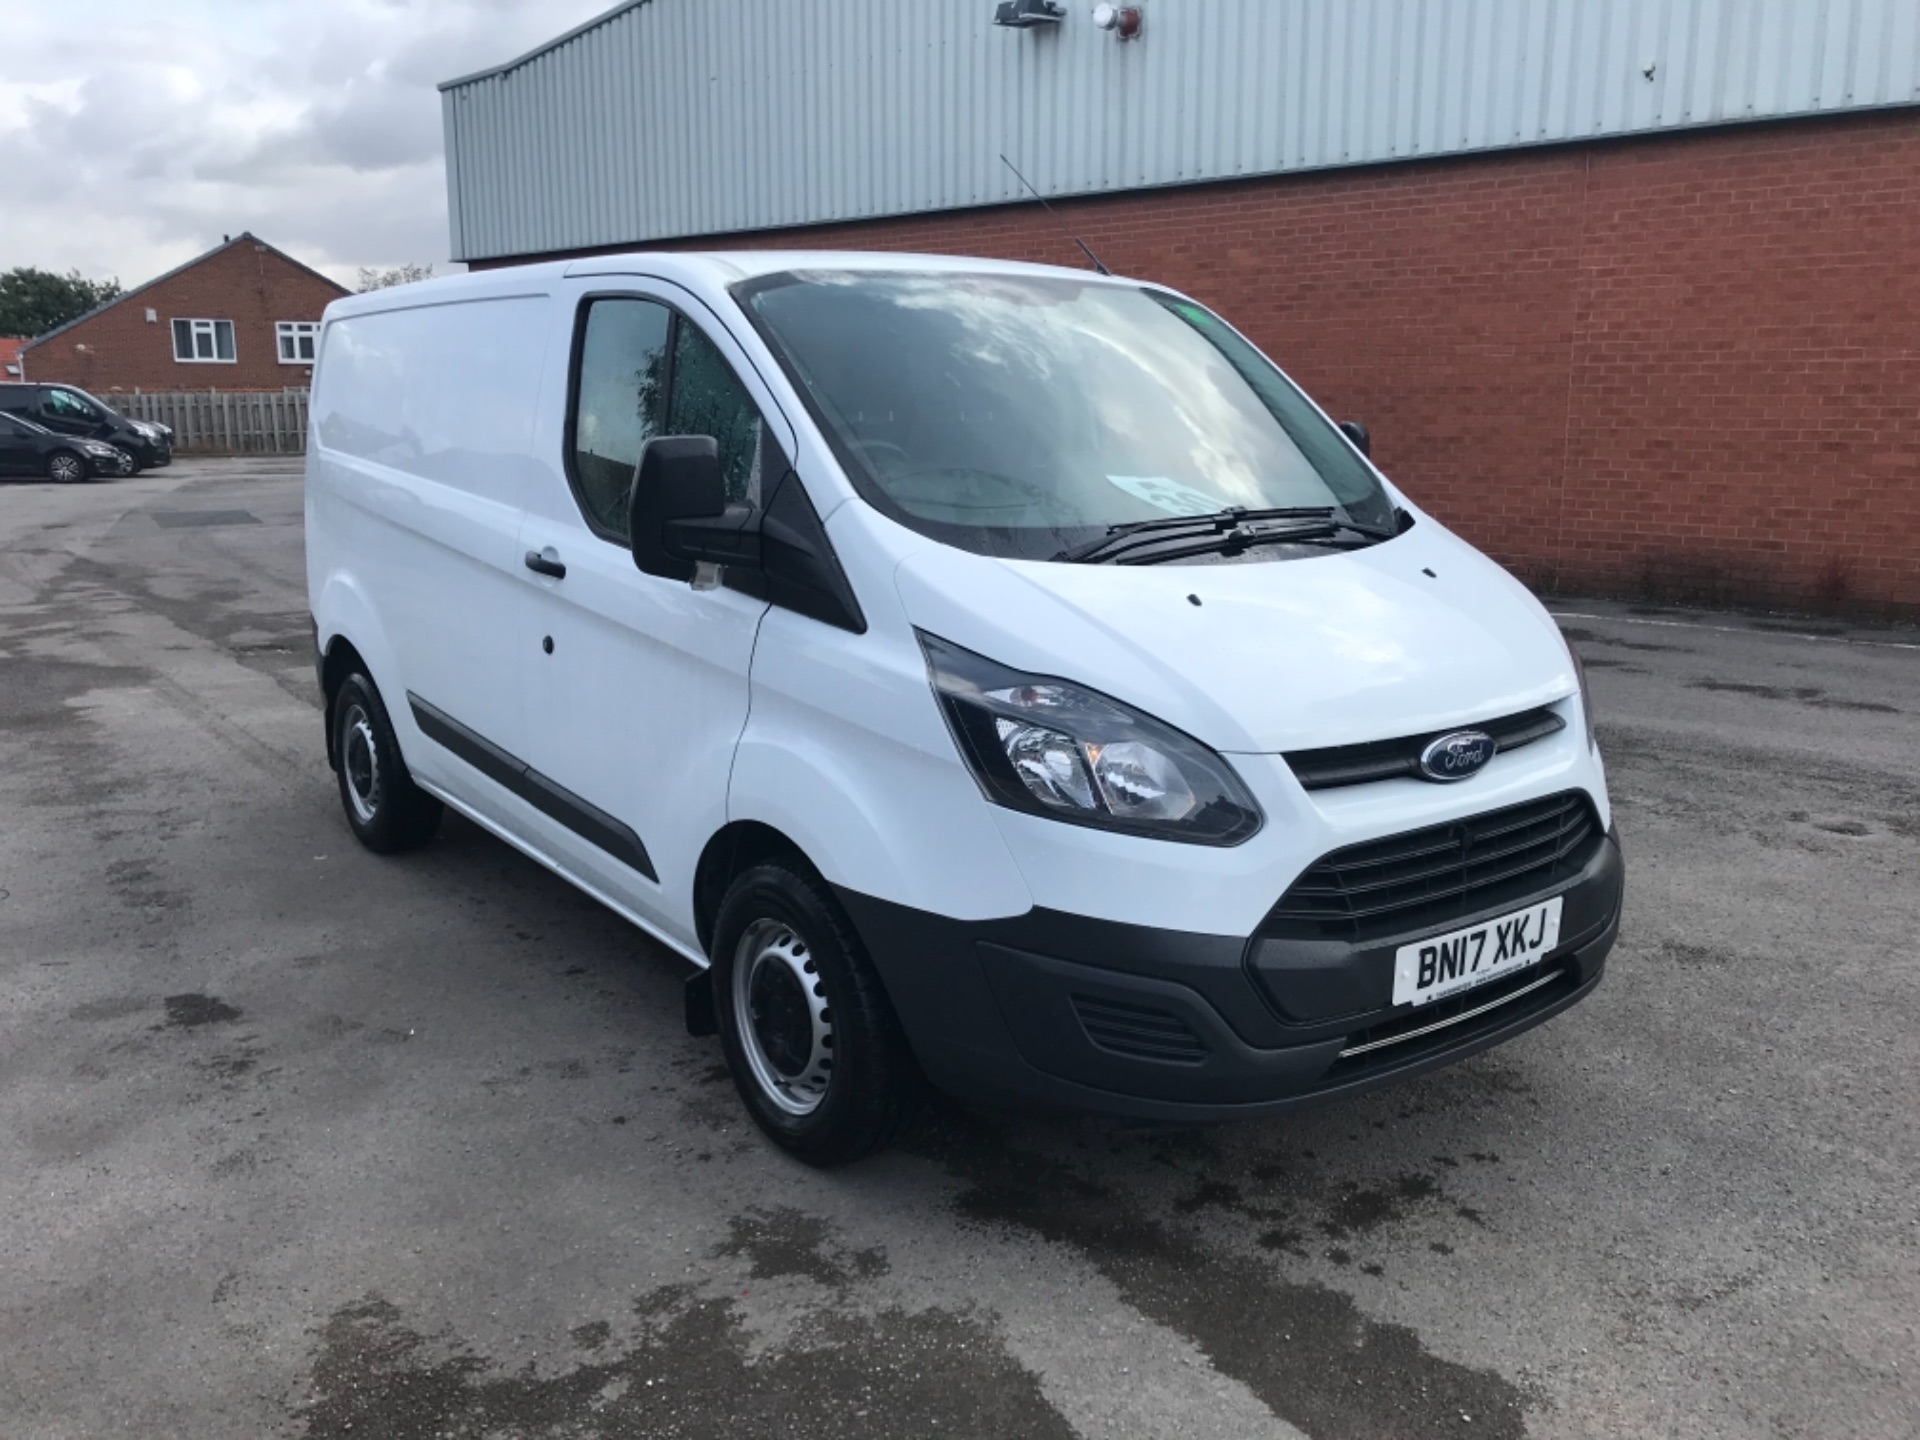 2017 Ford Transit Custom 2.0 Tdci 105Ps Low Roof Van Euro 6 (BN17XKJ) Image 1